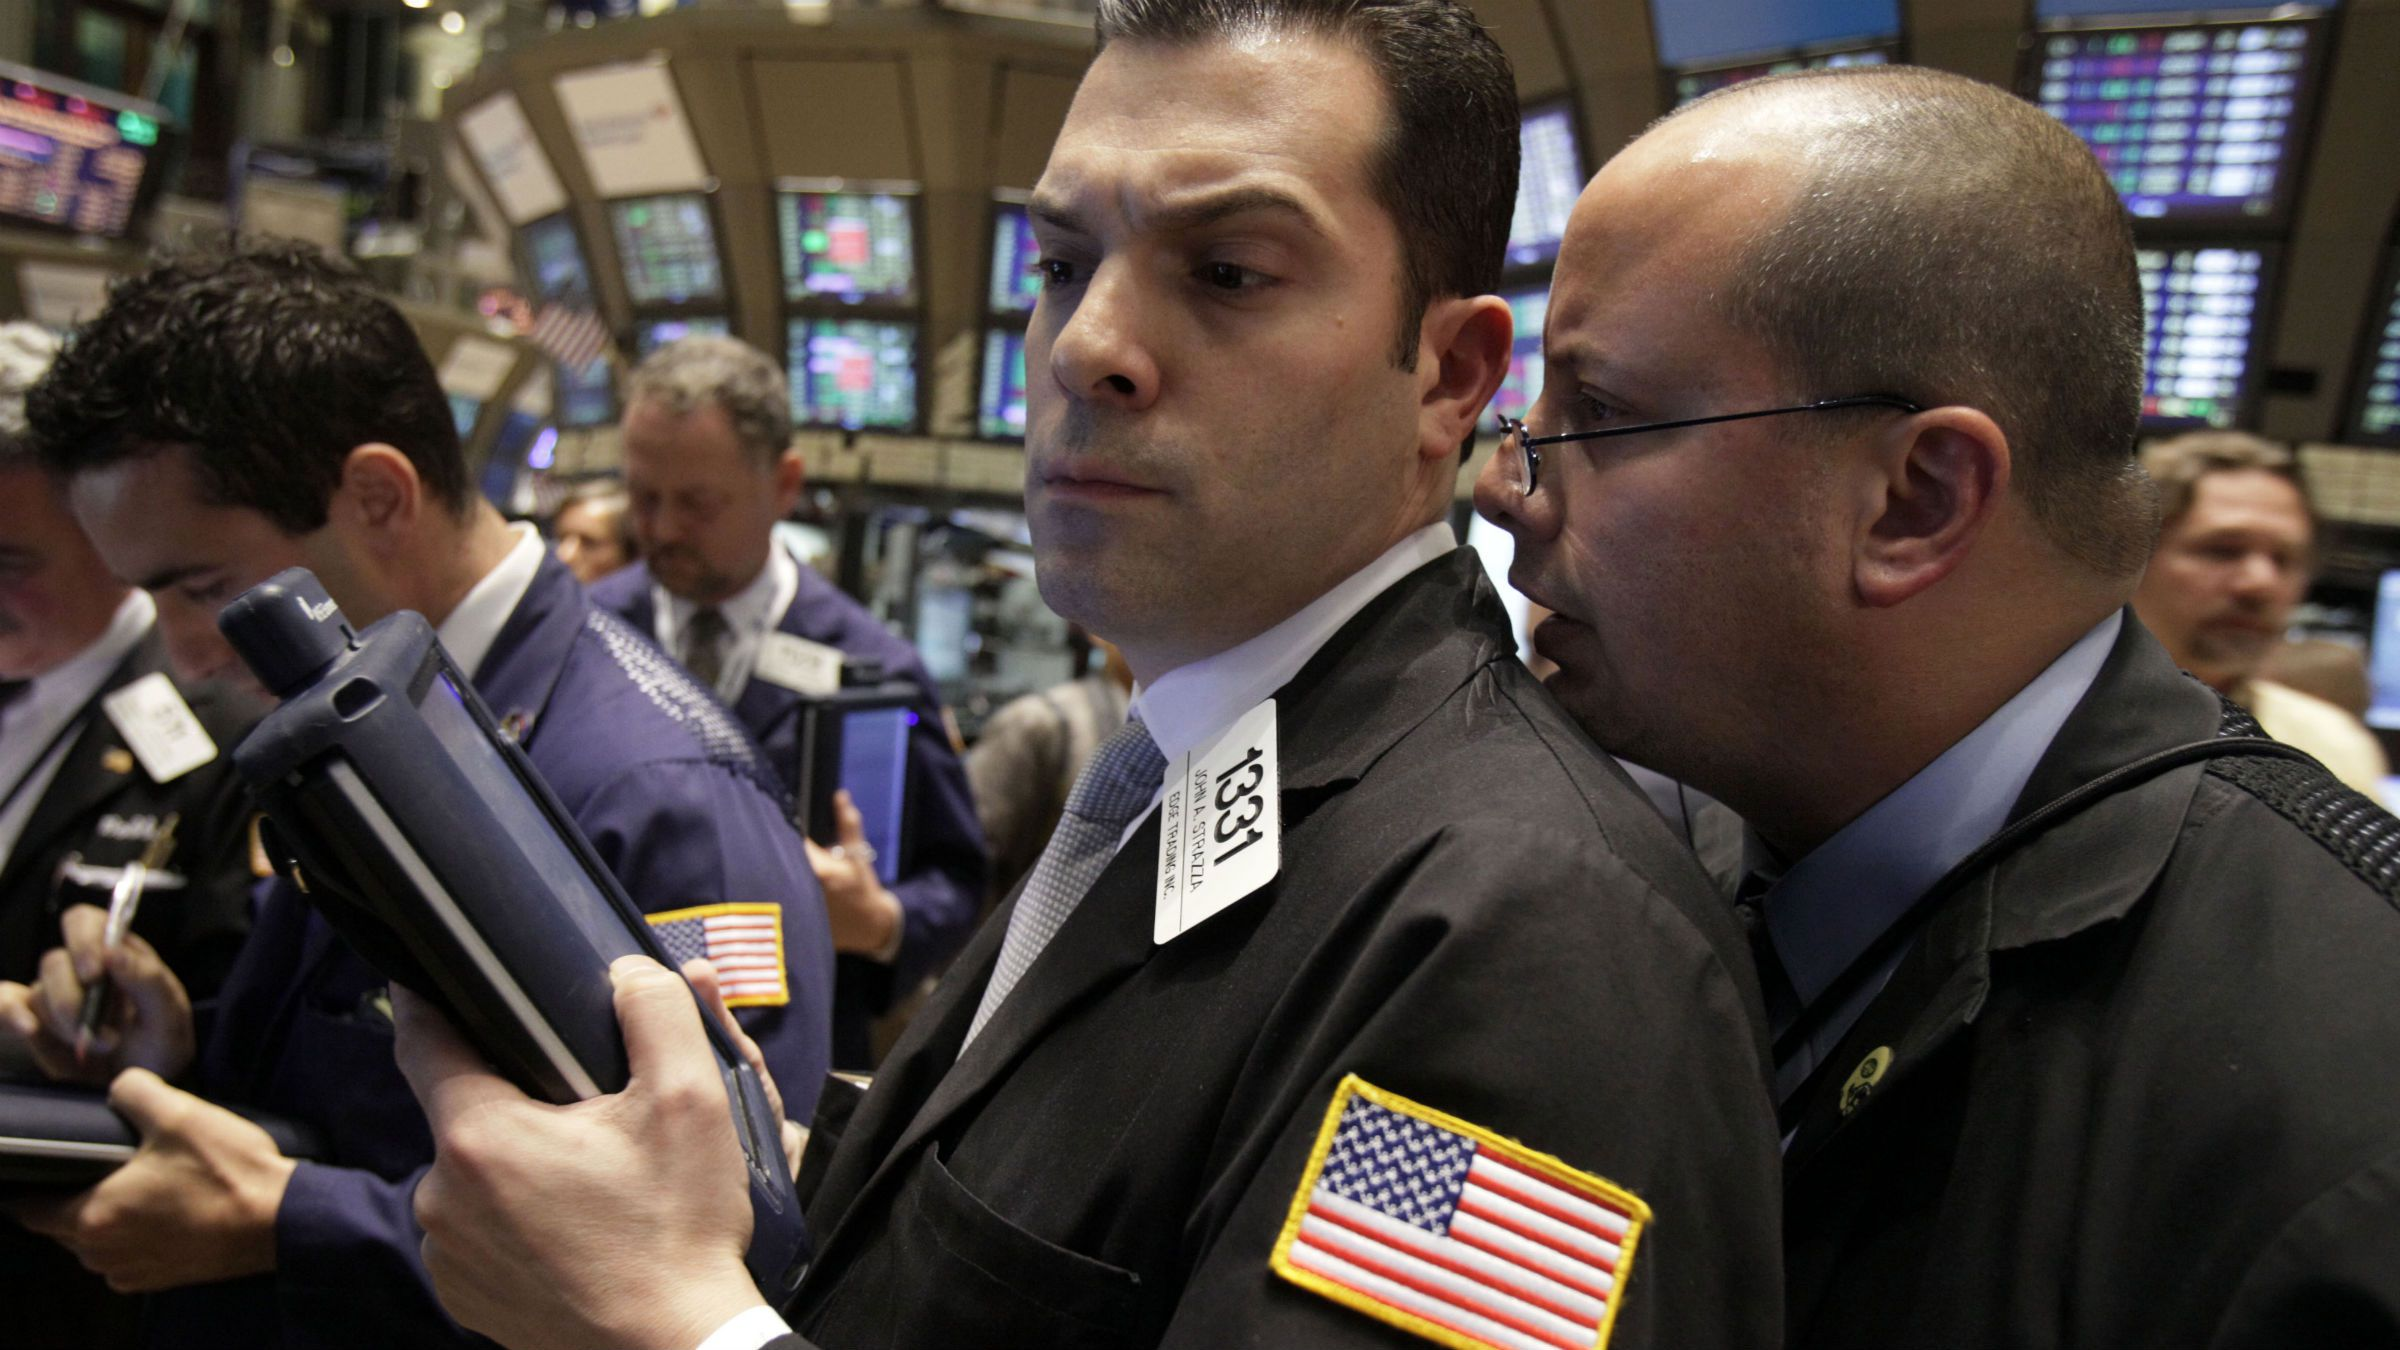 One trader whispering to another on the floor of the New York Stock Exchange.